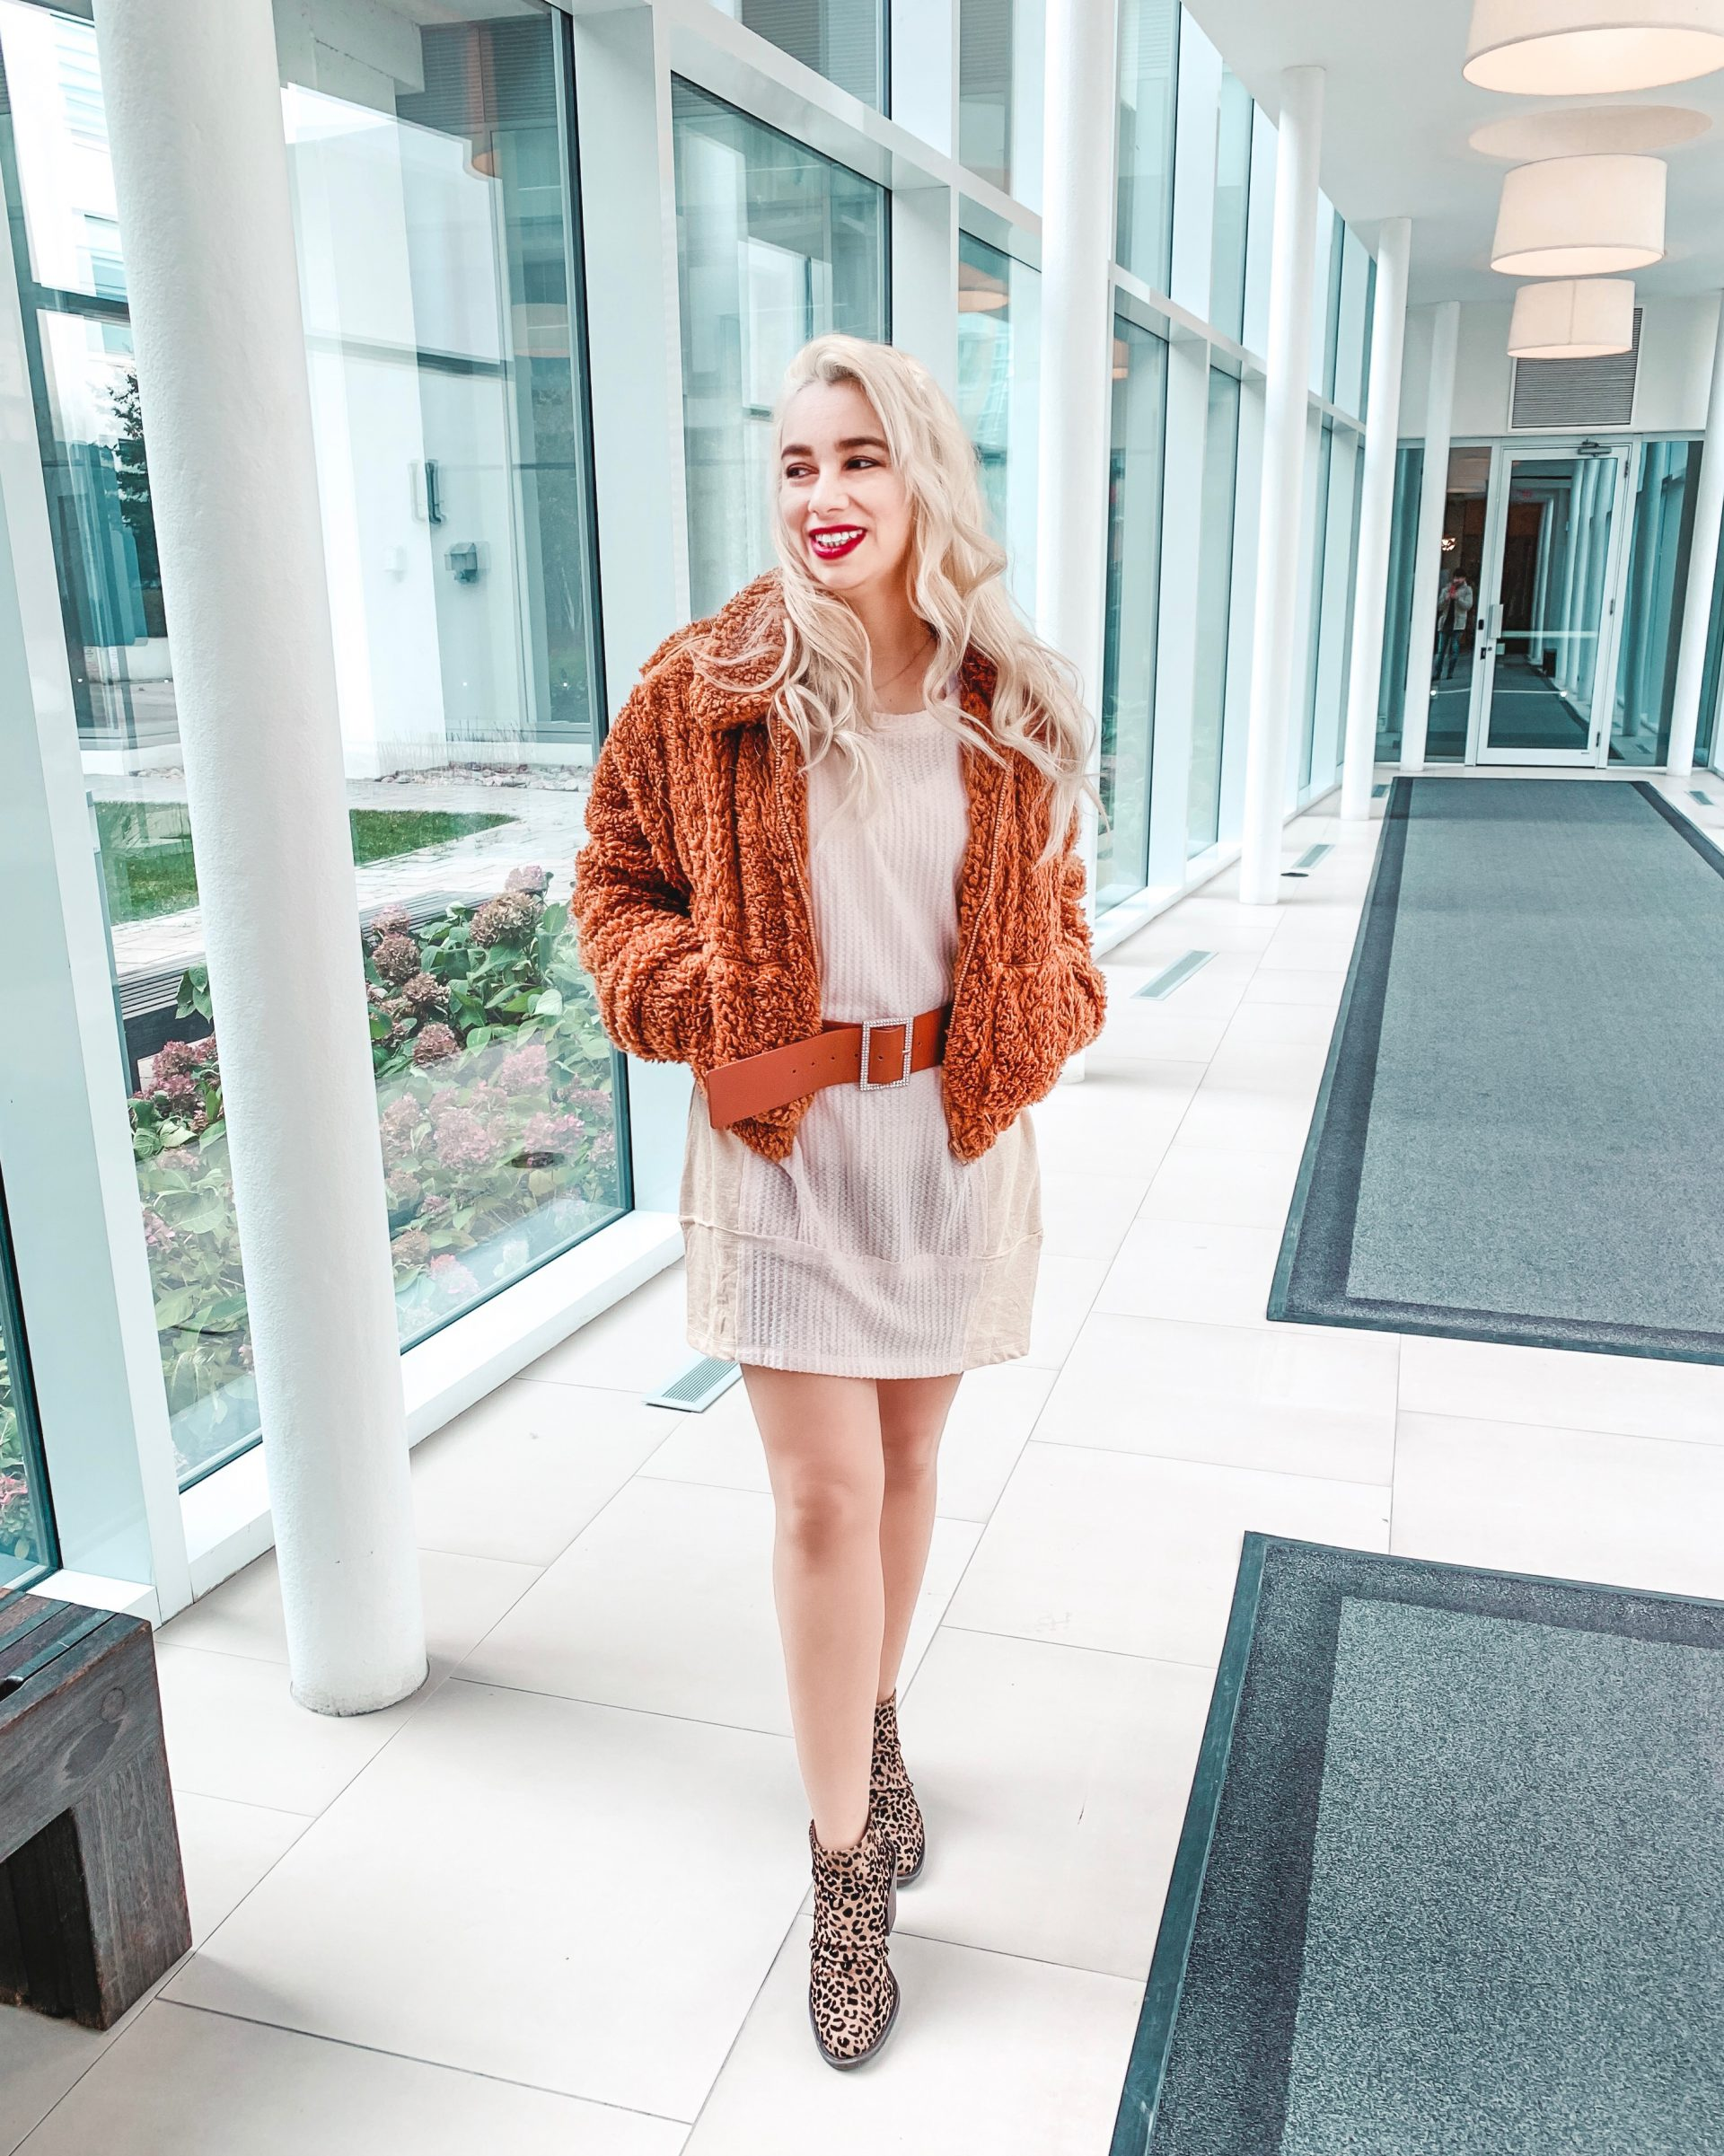 Outfit of the day: Nude Dress + Teddy Jacket